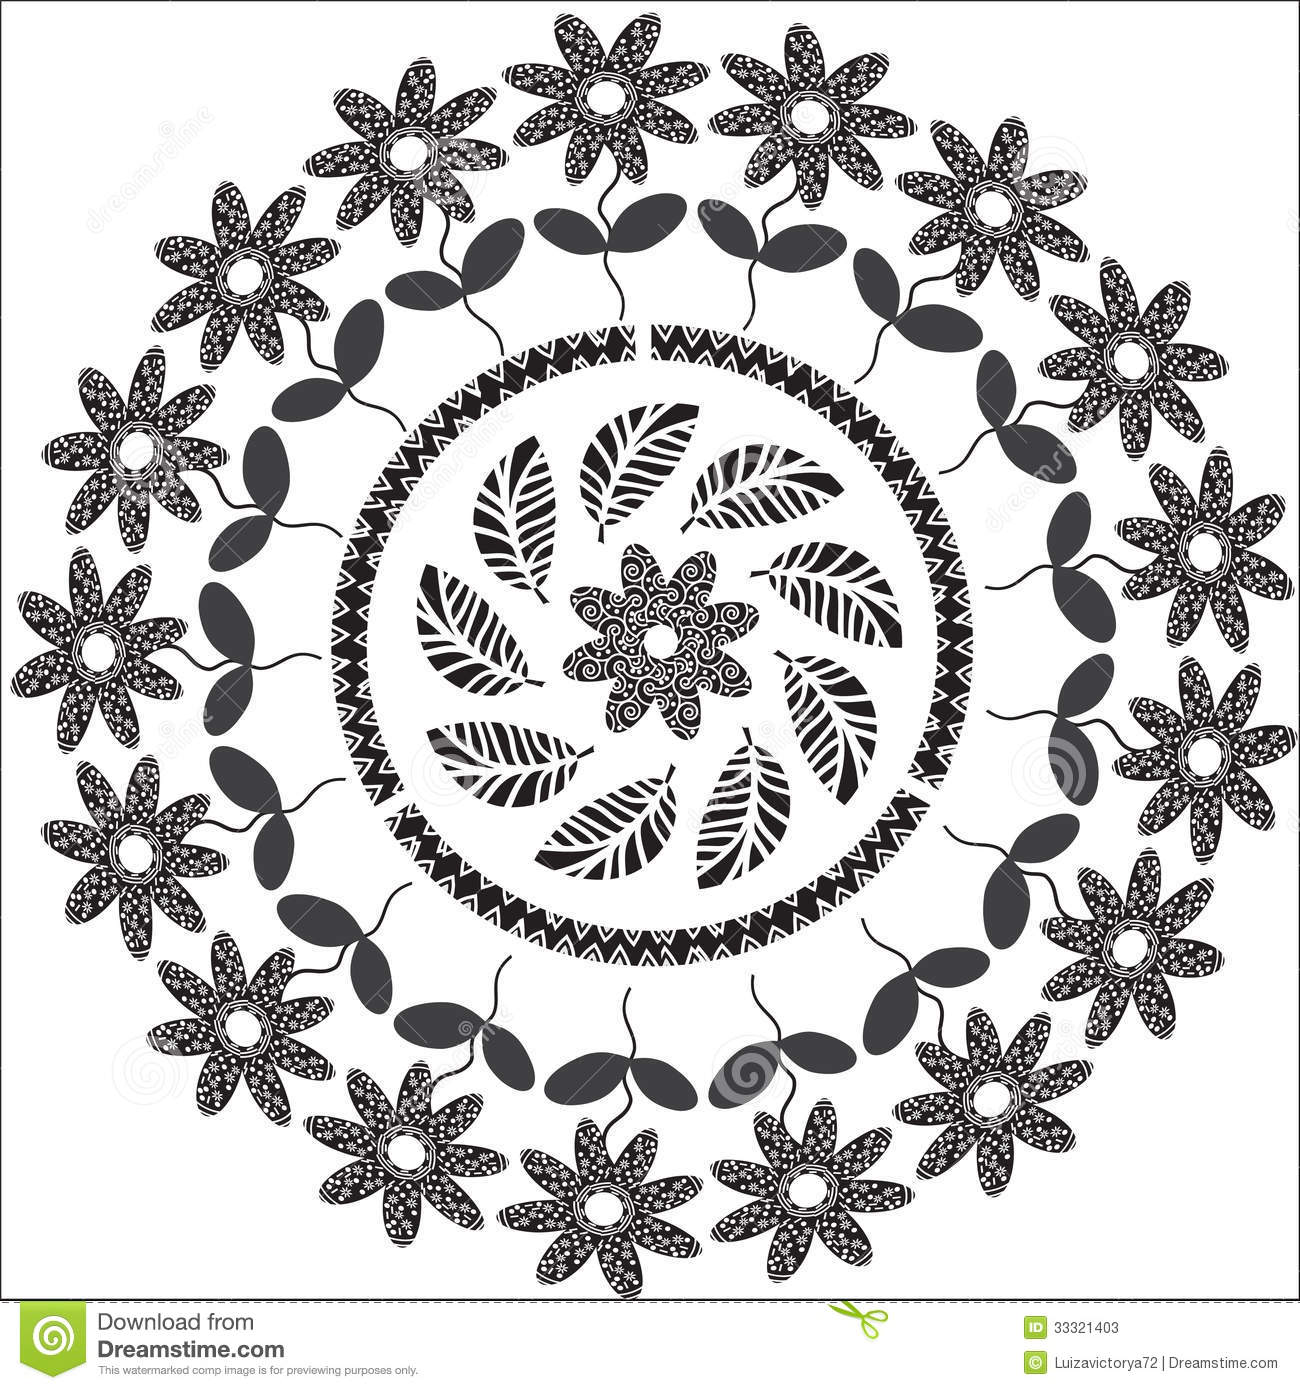 Circular Floral Ornament In Black For Different De Stock